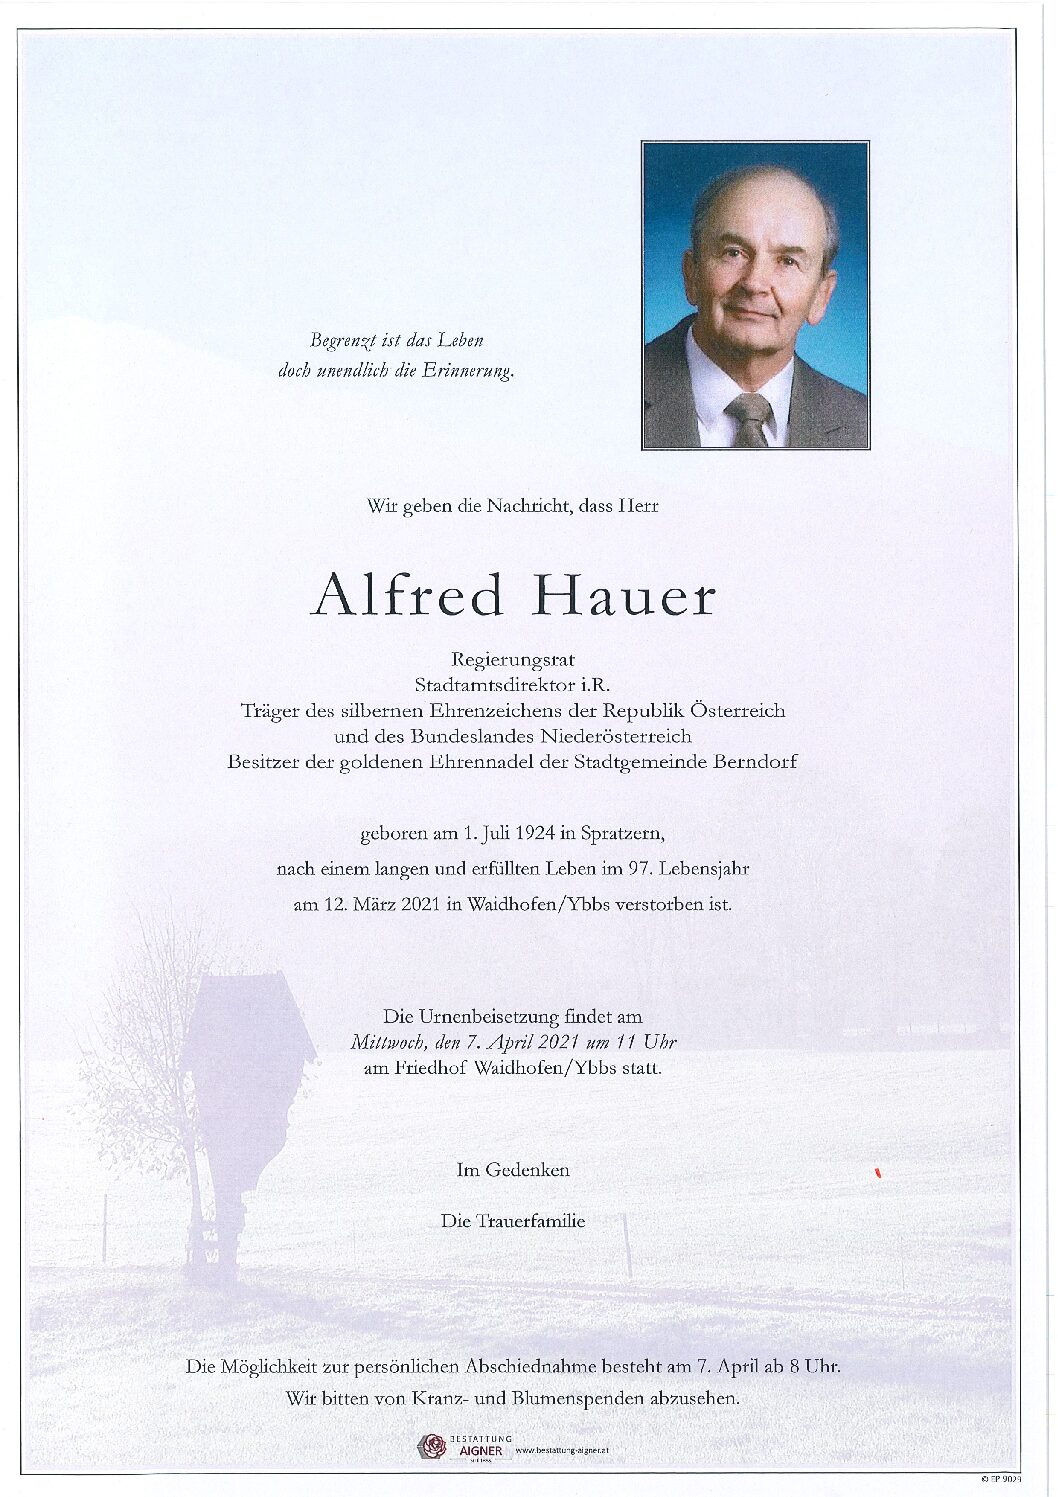 Alfred Hauer